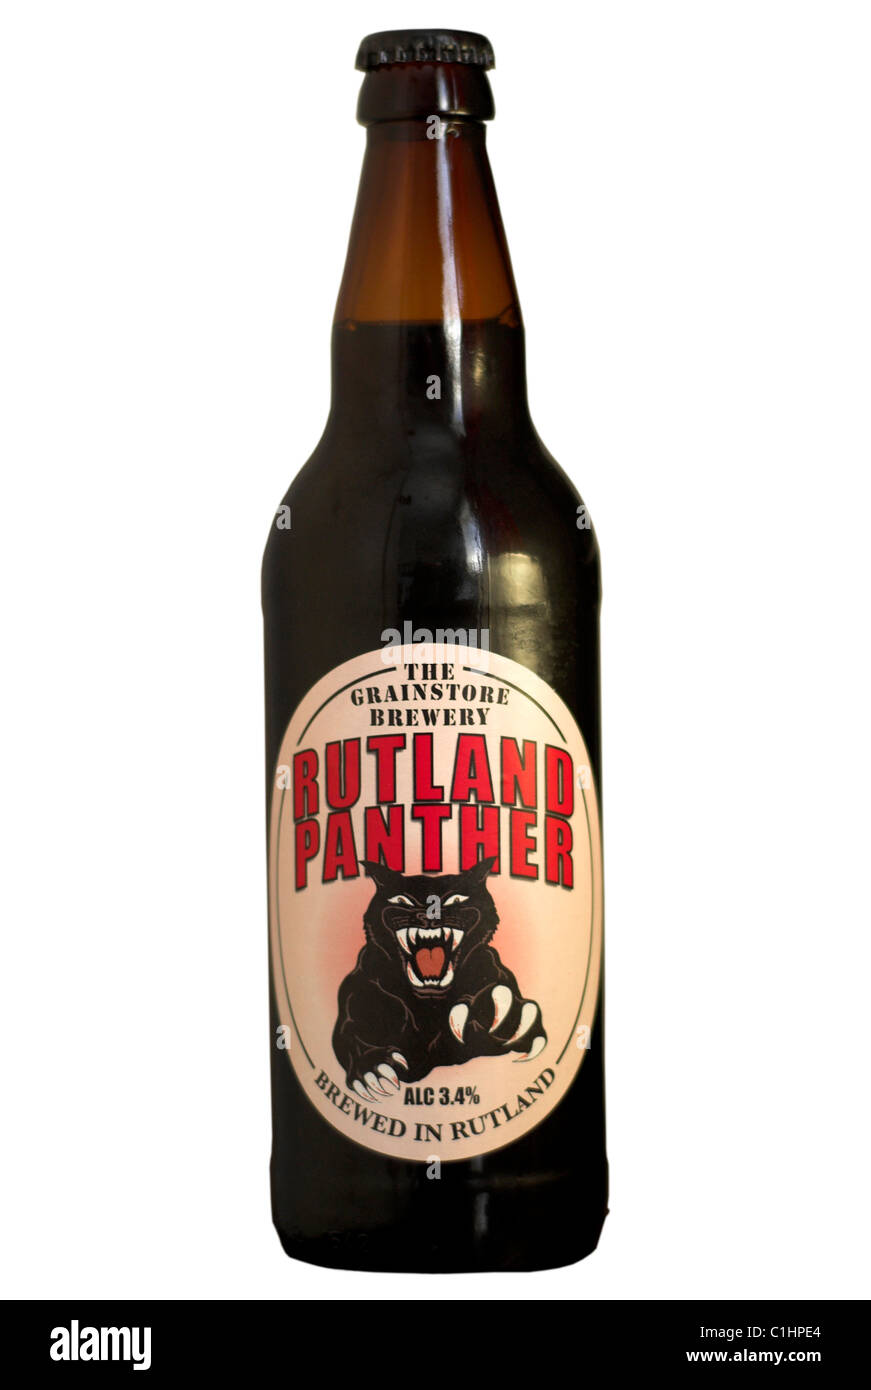 The Grainstore Brewery Rutland Panther bottled beer - current @ 2011. - Stock Image